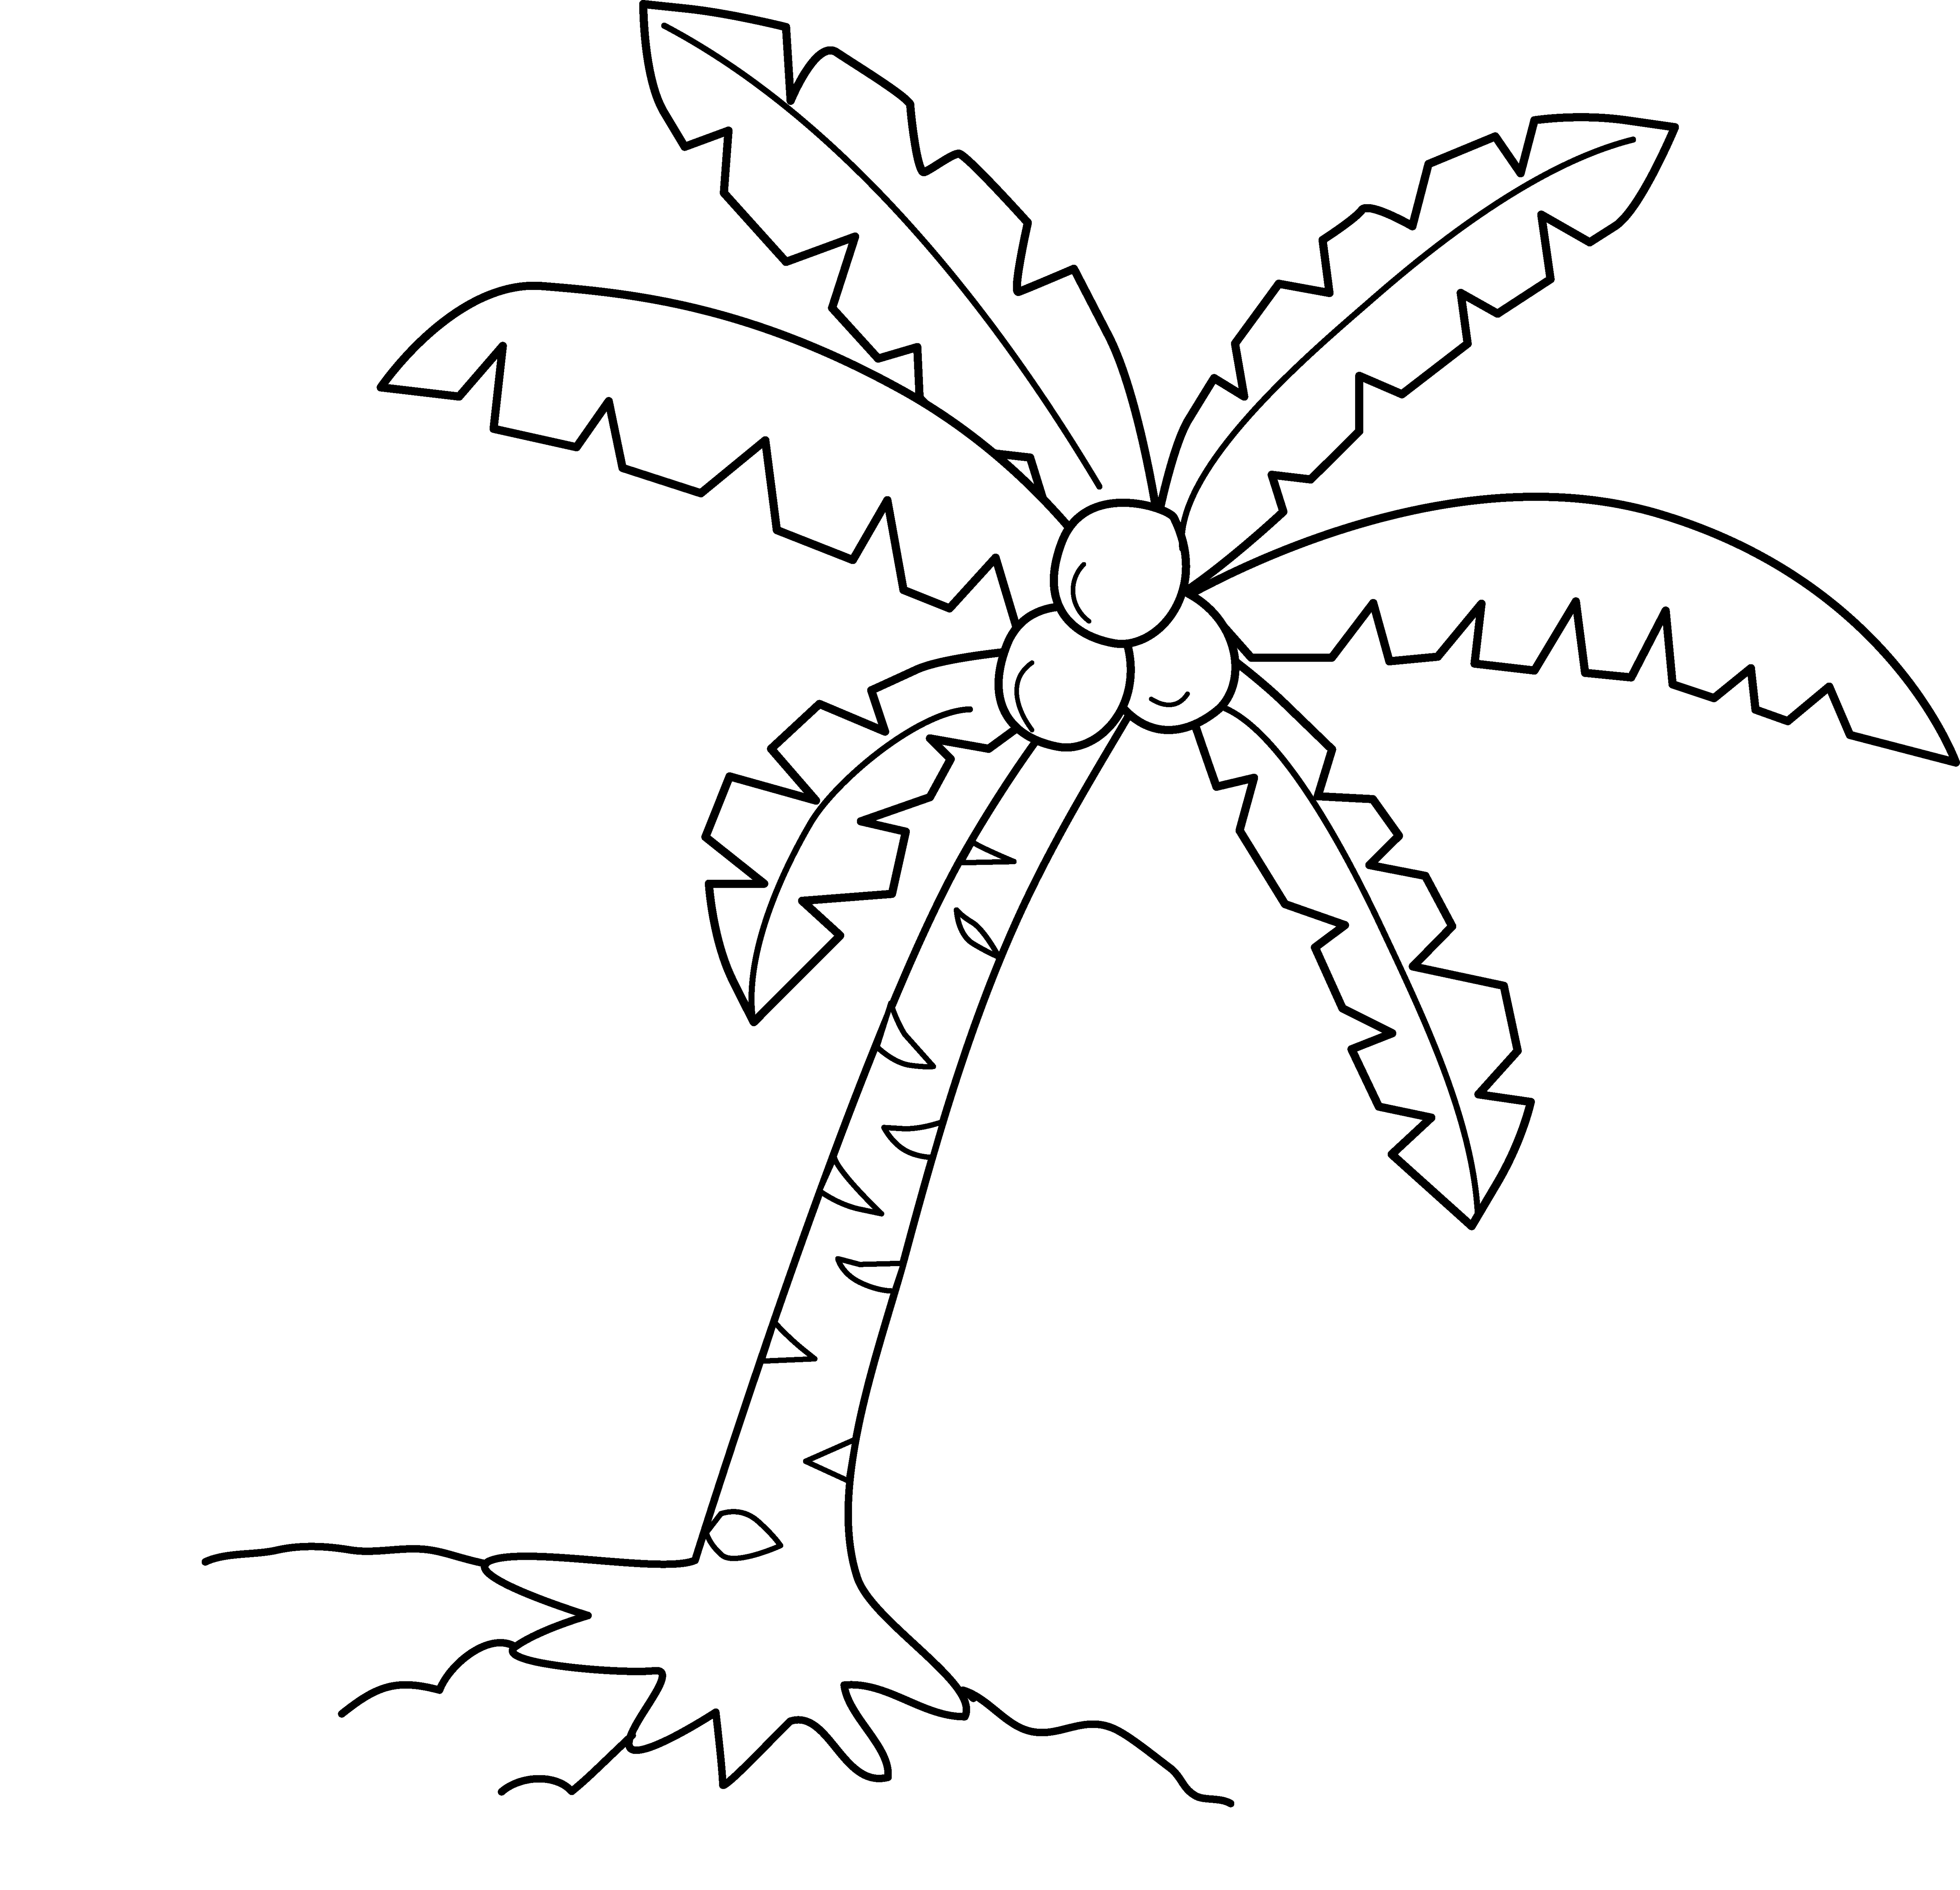 Coconut Tree Drawing at GetDrawings.com   Free for personal use ...